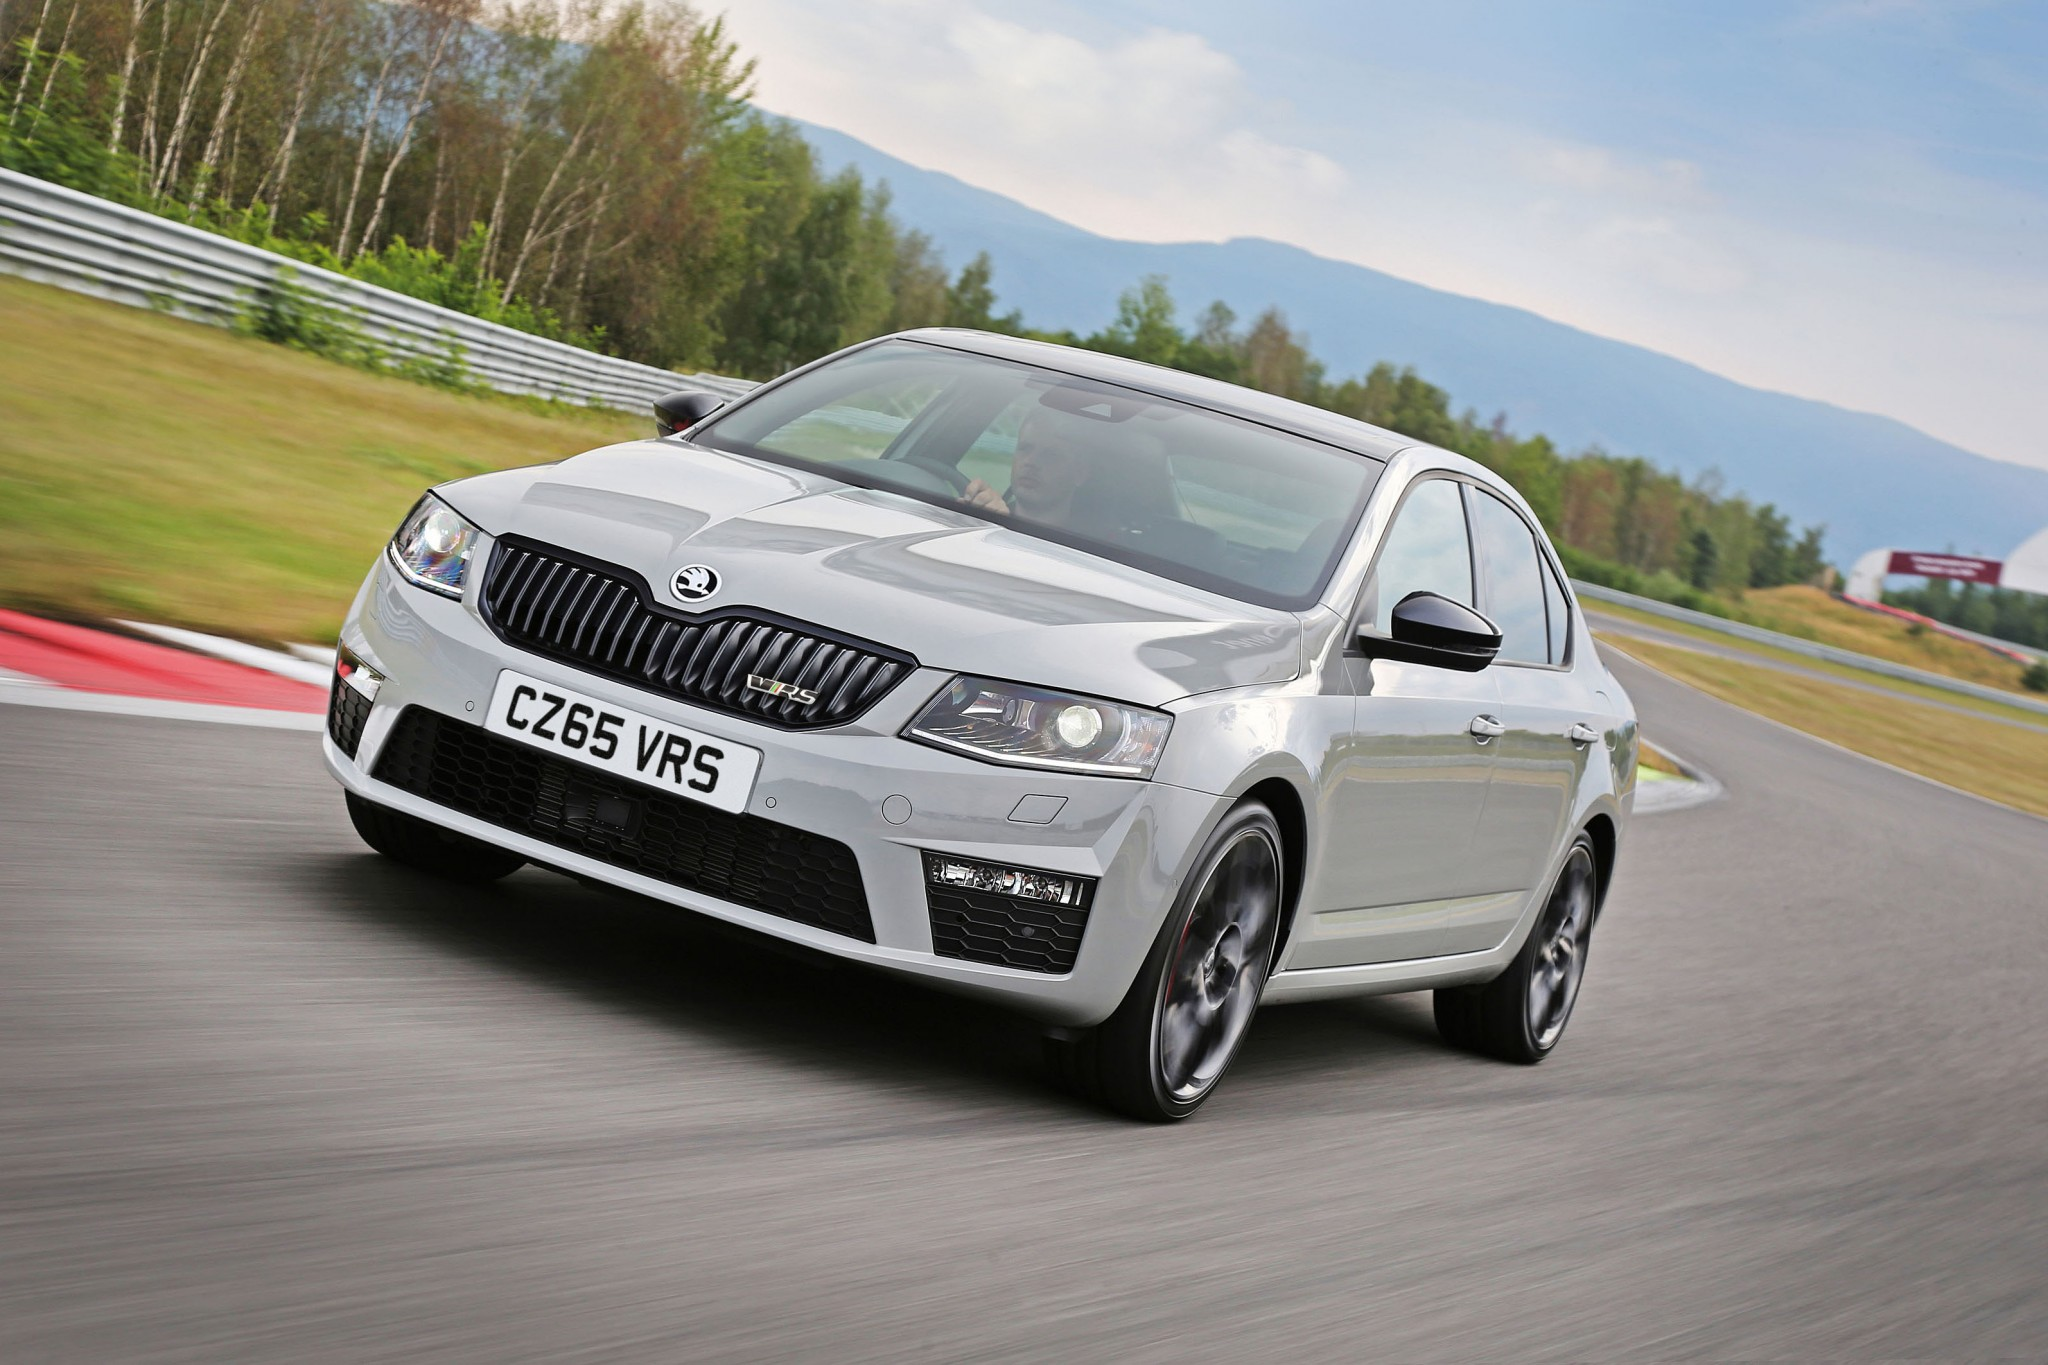 2016 skoda octavia rs gets all wheel drive practical motoring. Black Bedroom Furniture Sets. Home Design Ideas